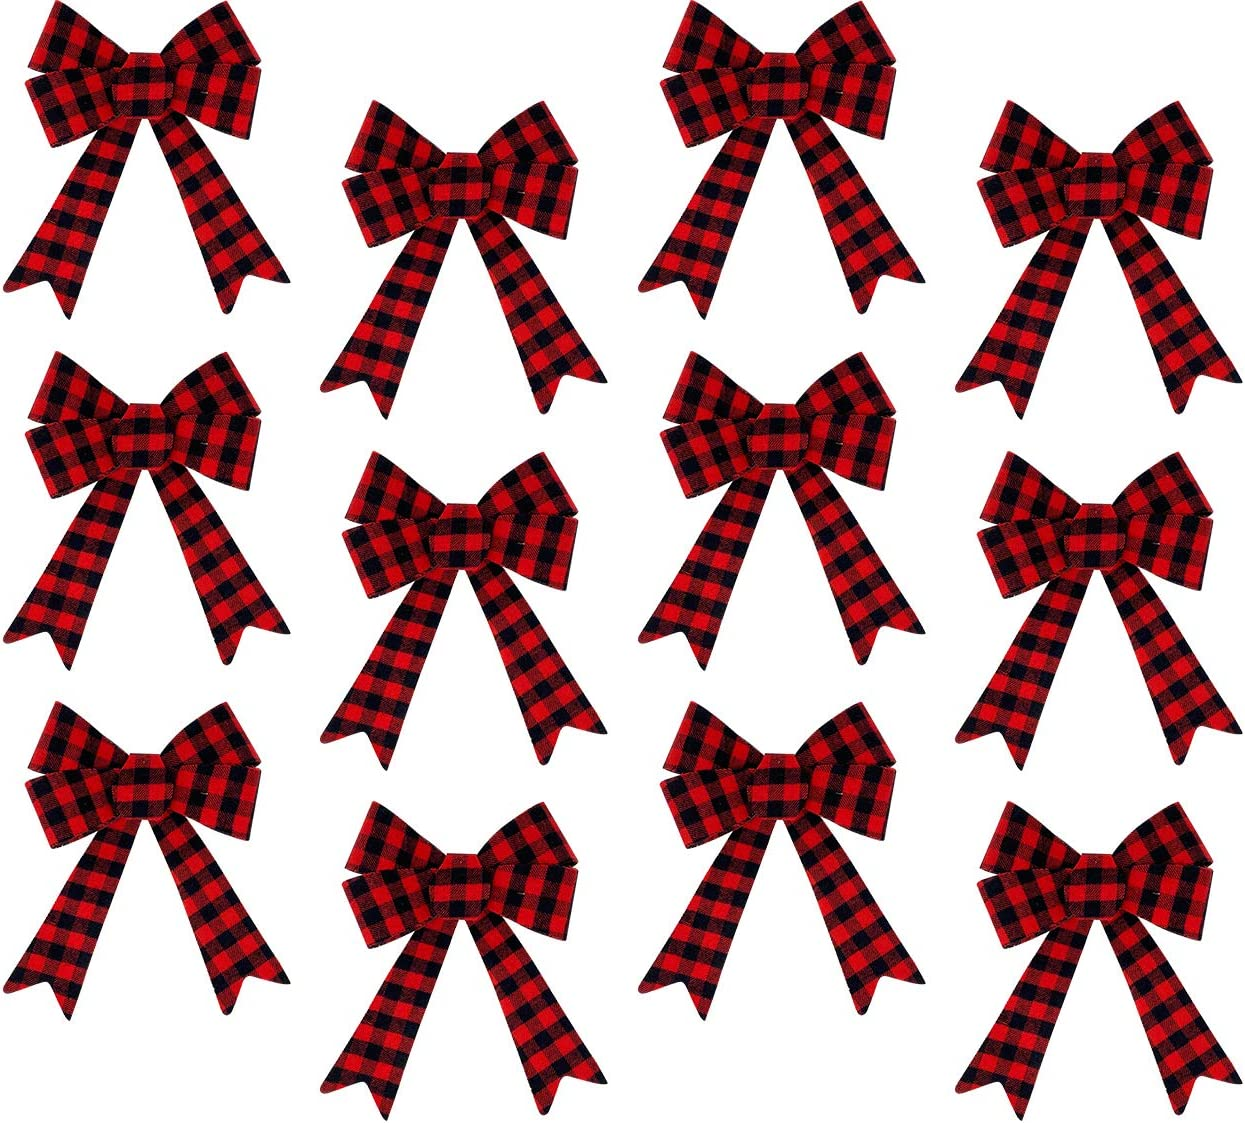 Celebrate A Holiday Red Buffalo Plaid Bows 5x7 Inch, Set of 12 - Plaid Christmas Decorations - Great for Christmas Garland - Buffalo Check Ribbons - Ideal Christmas Tree Bows For Indoor or Outdoor Use